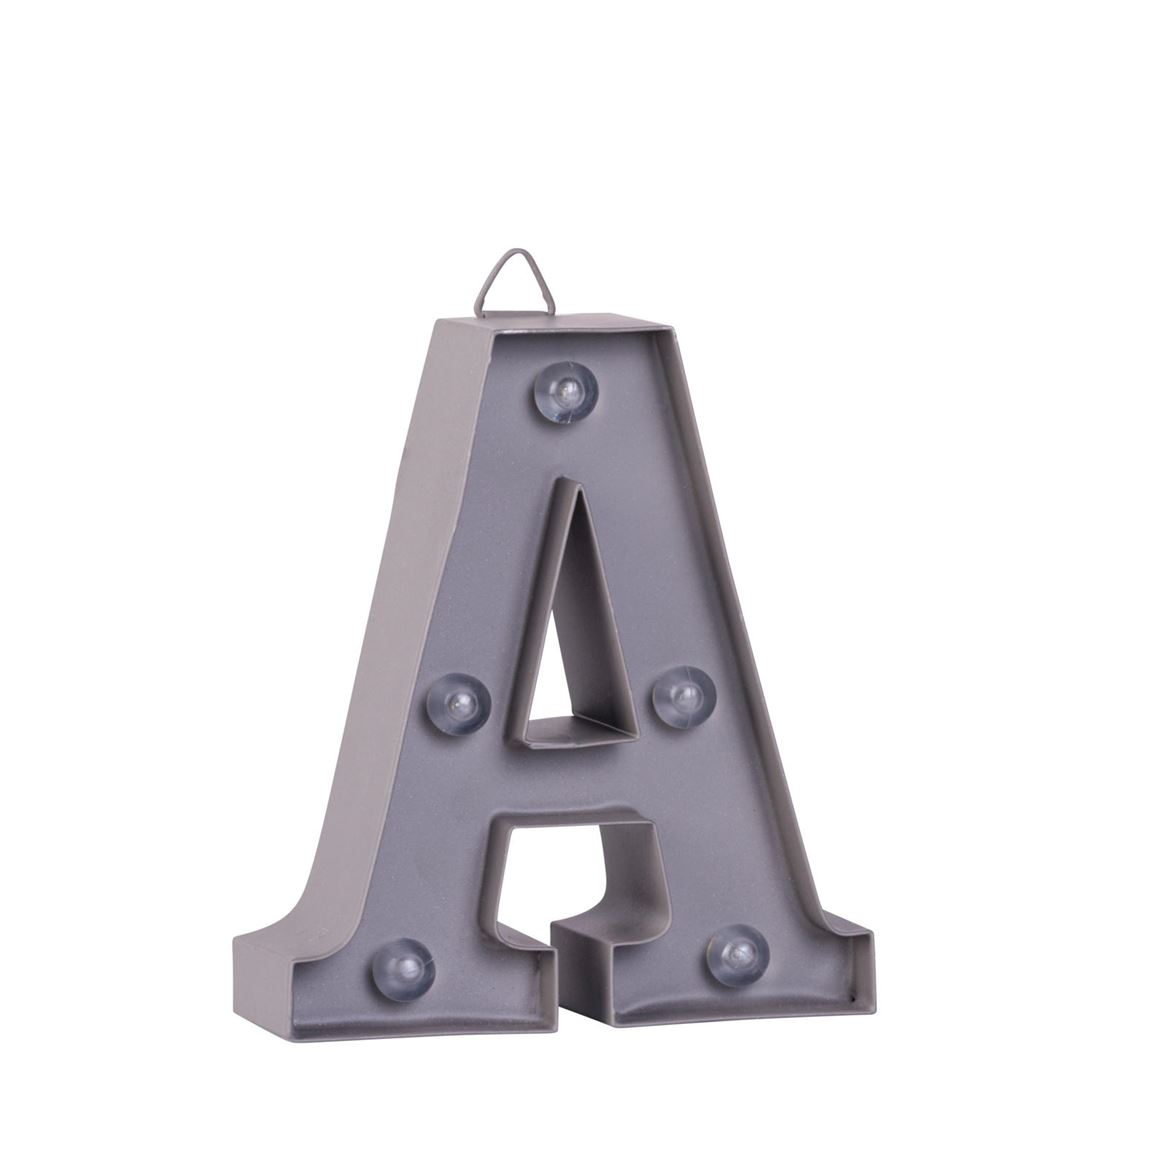 LED Letter A metaal H 10 cm_led-letter-a-metaal-h-10-cm